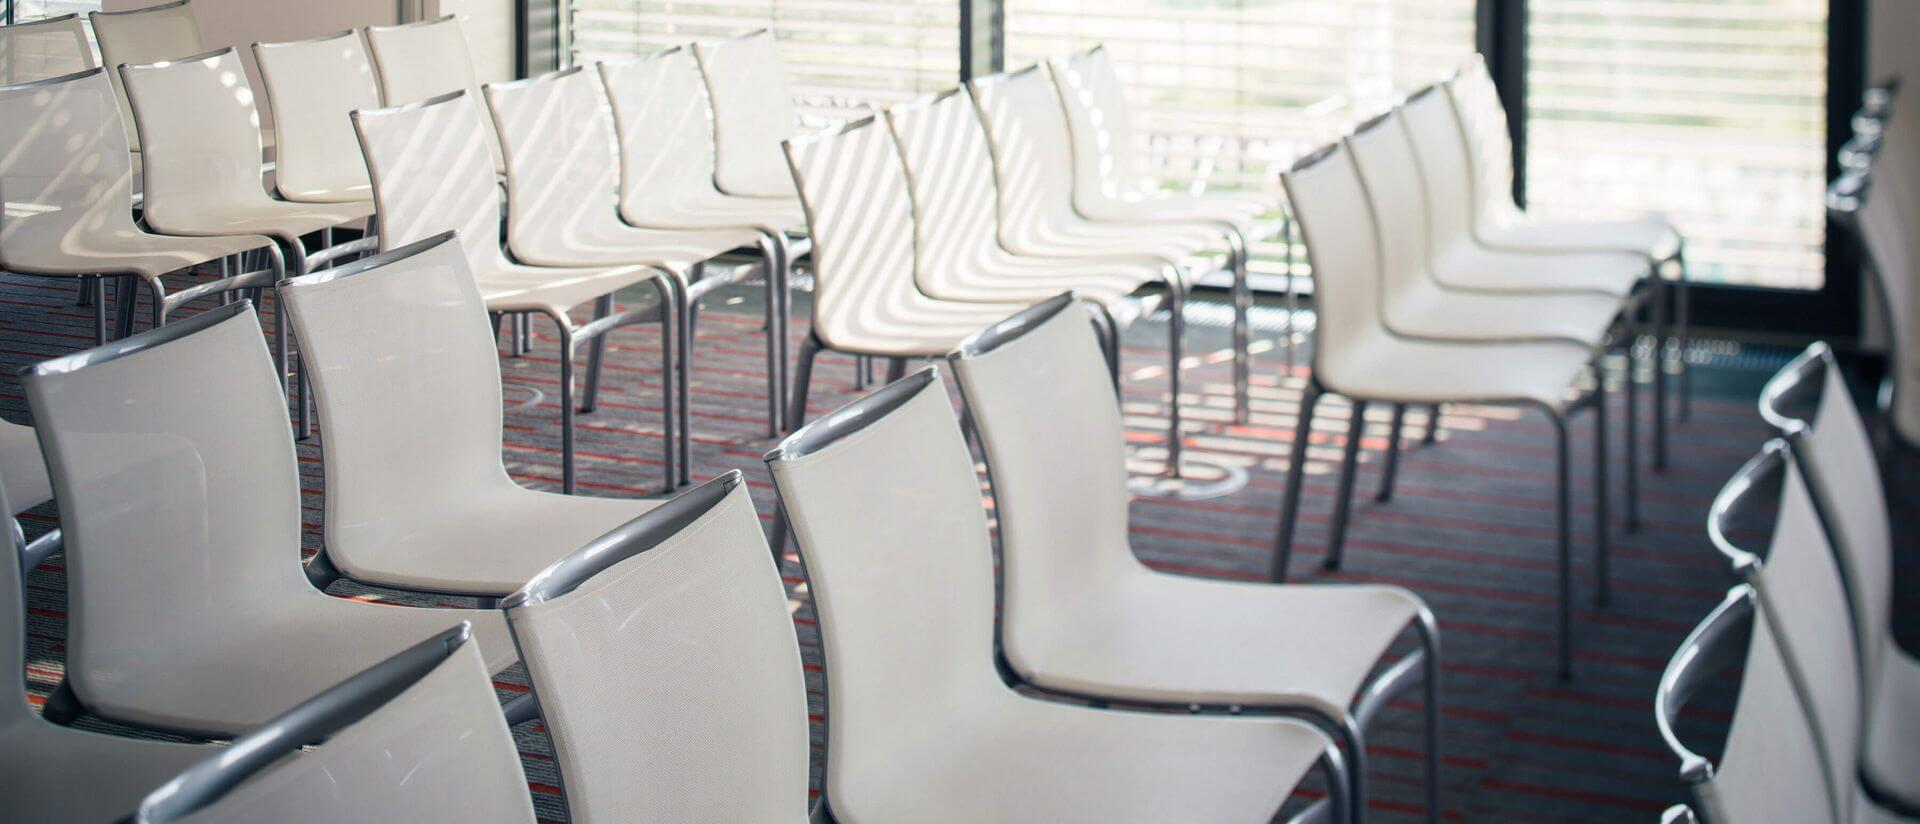 conference room seating